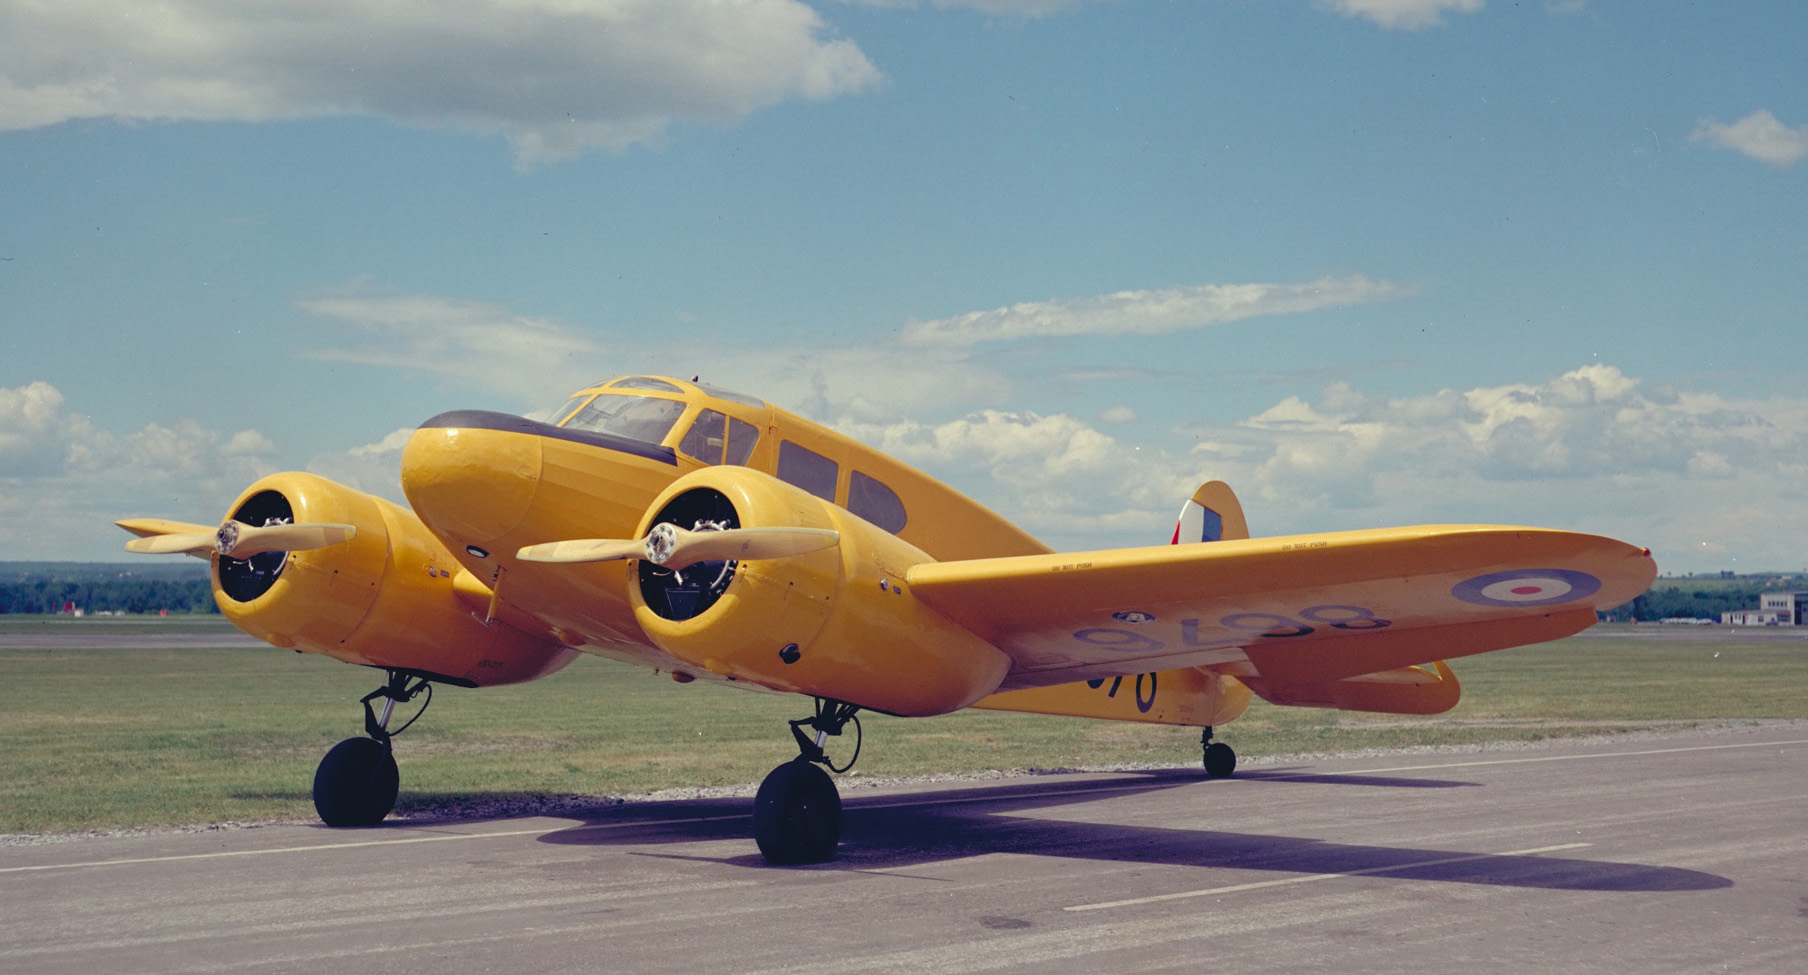 Un Cessna Crane Mk 1 portant la couleur jaune des avions-écoles. PHOTO : Archives du MDN, PCN-3871